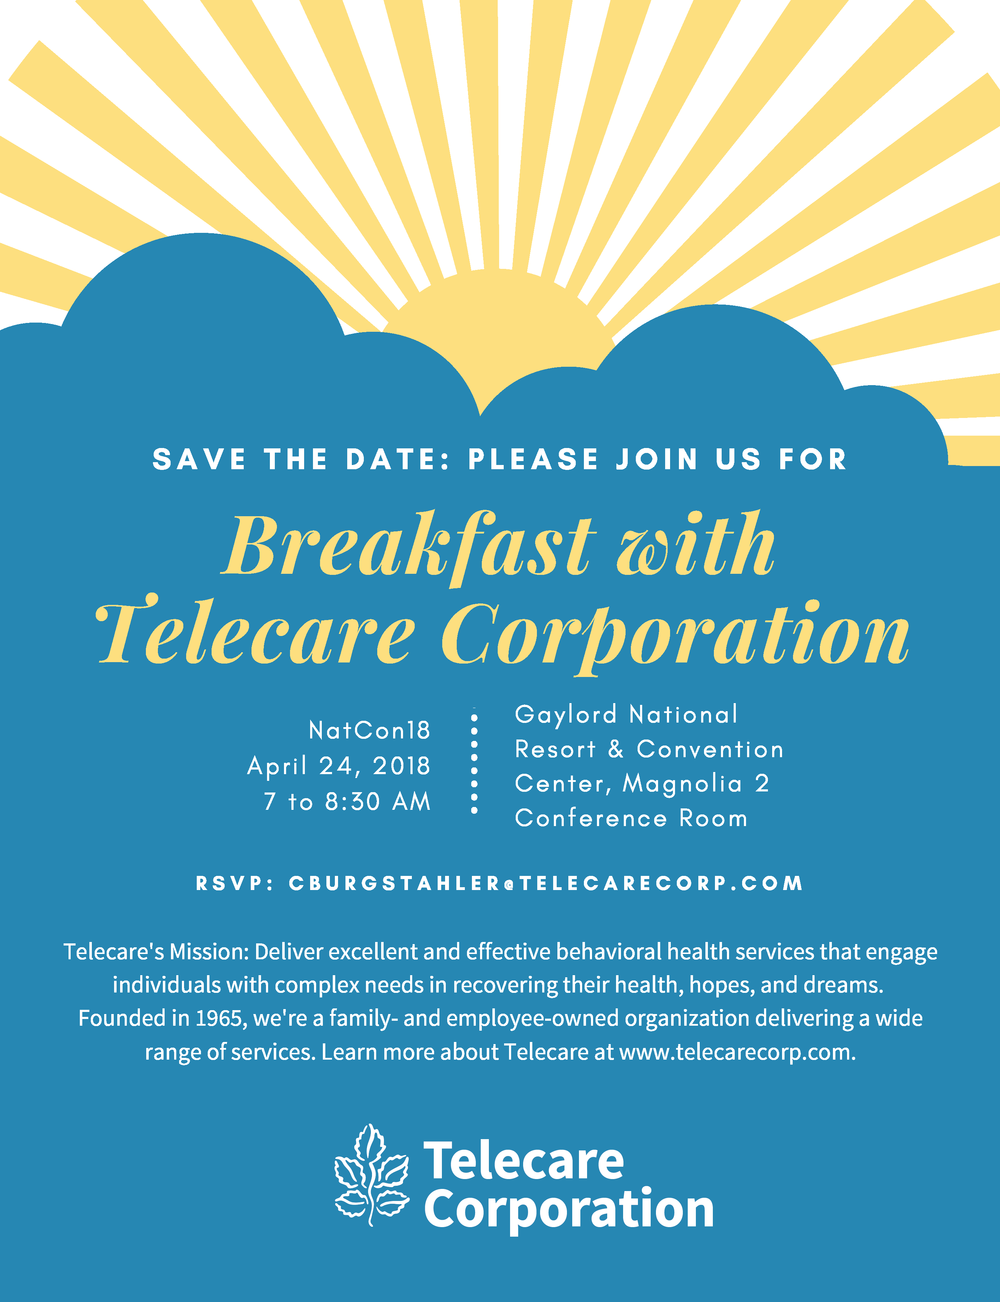 Telecare NatCon18 Breakfast Invitation FINAL.png